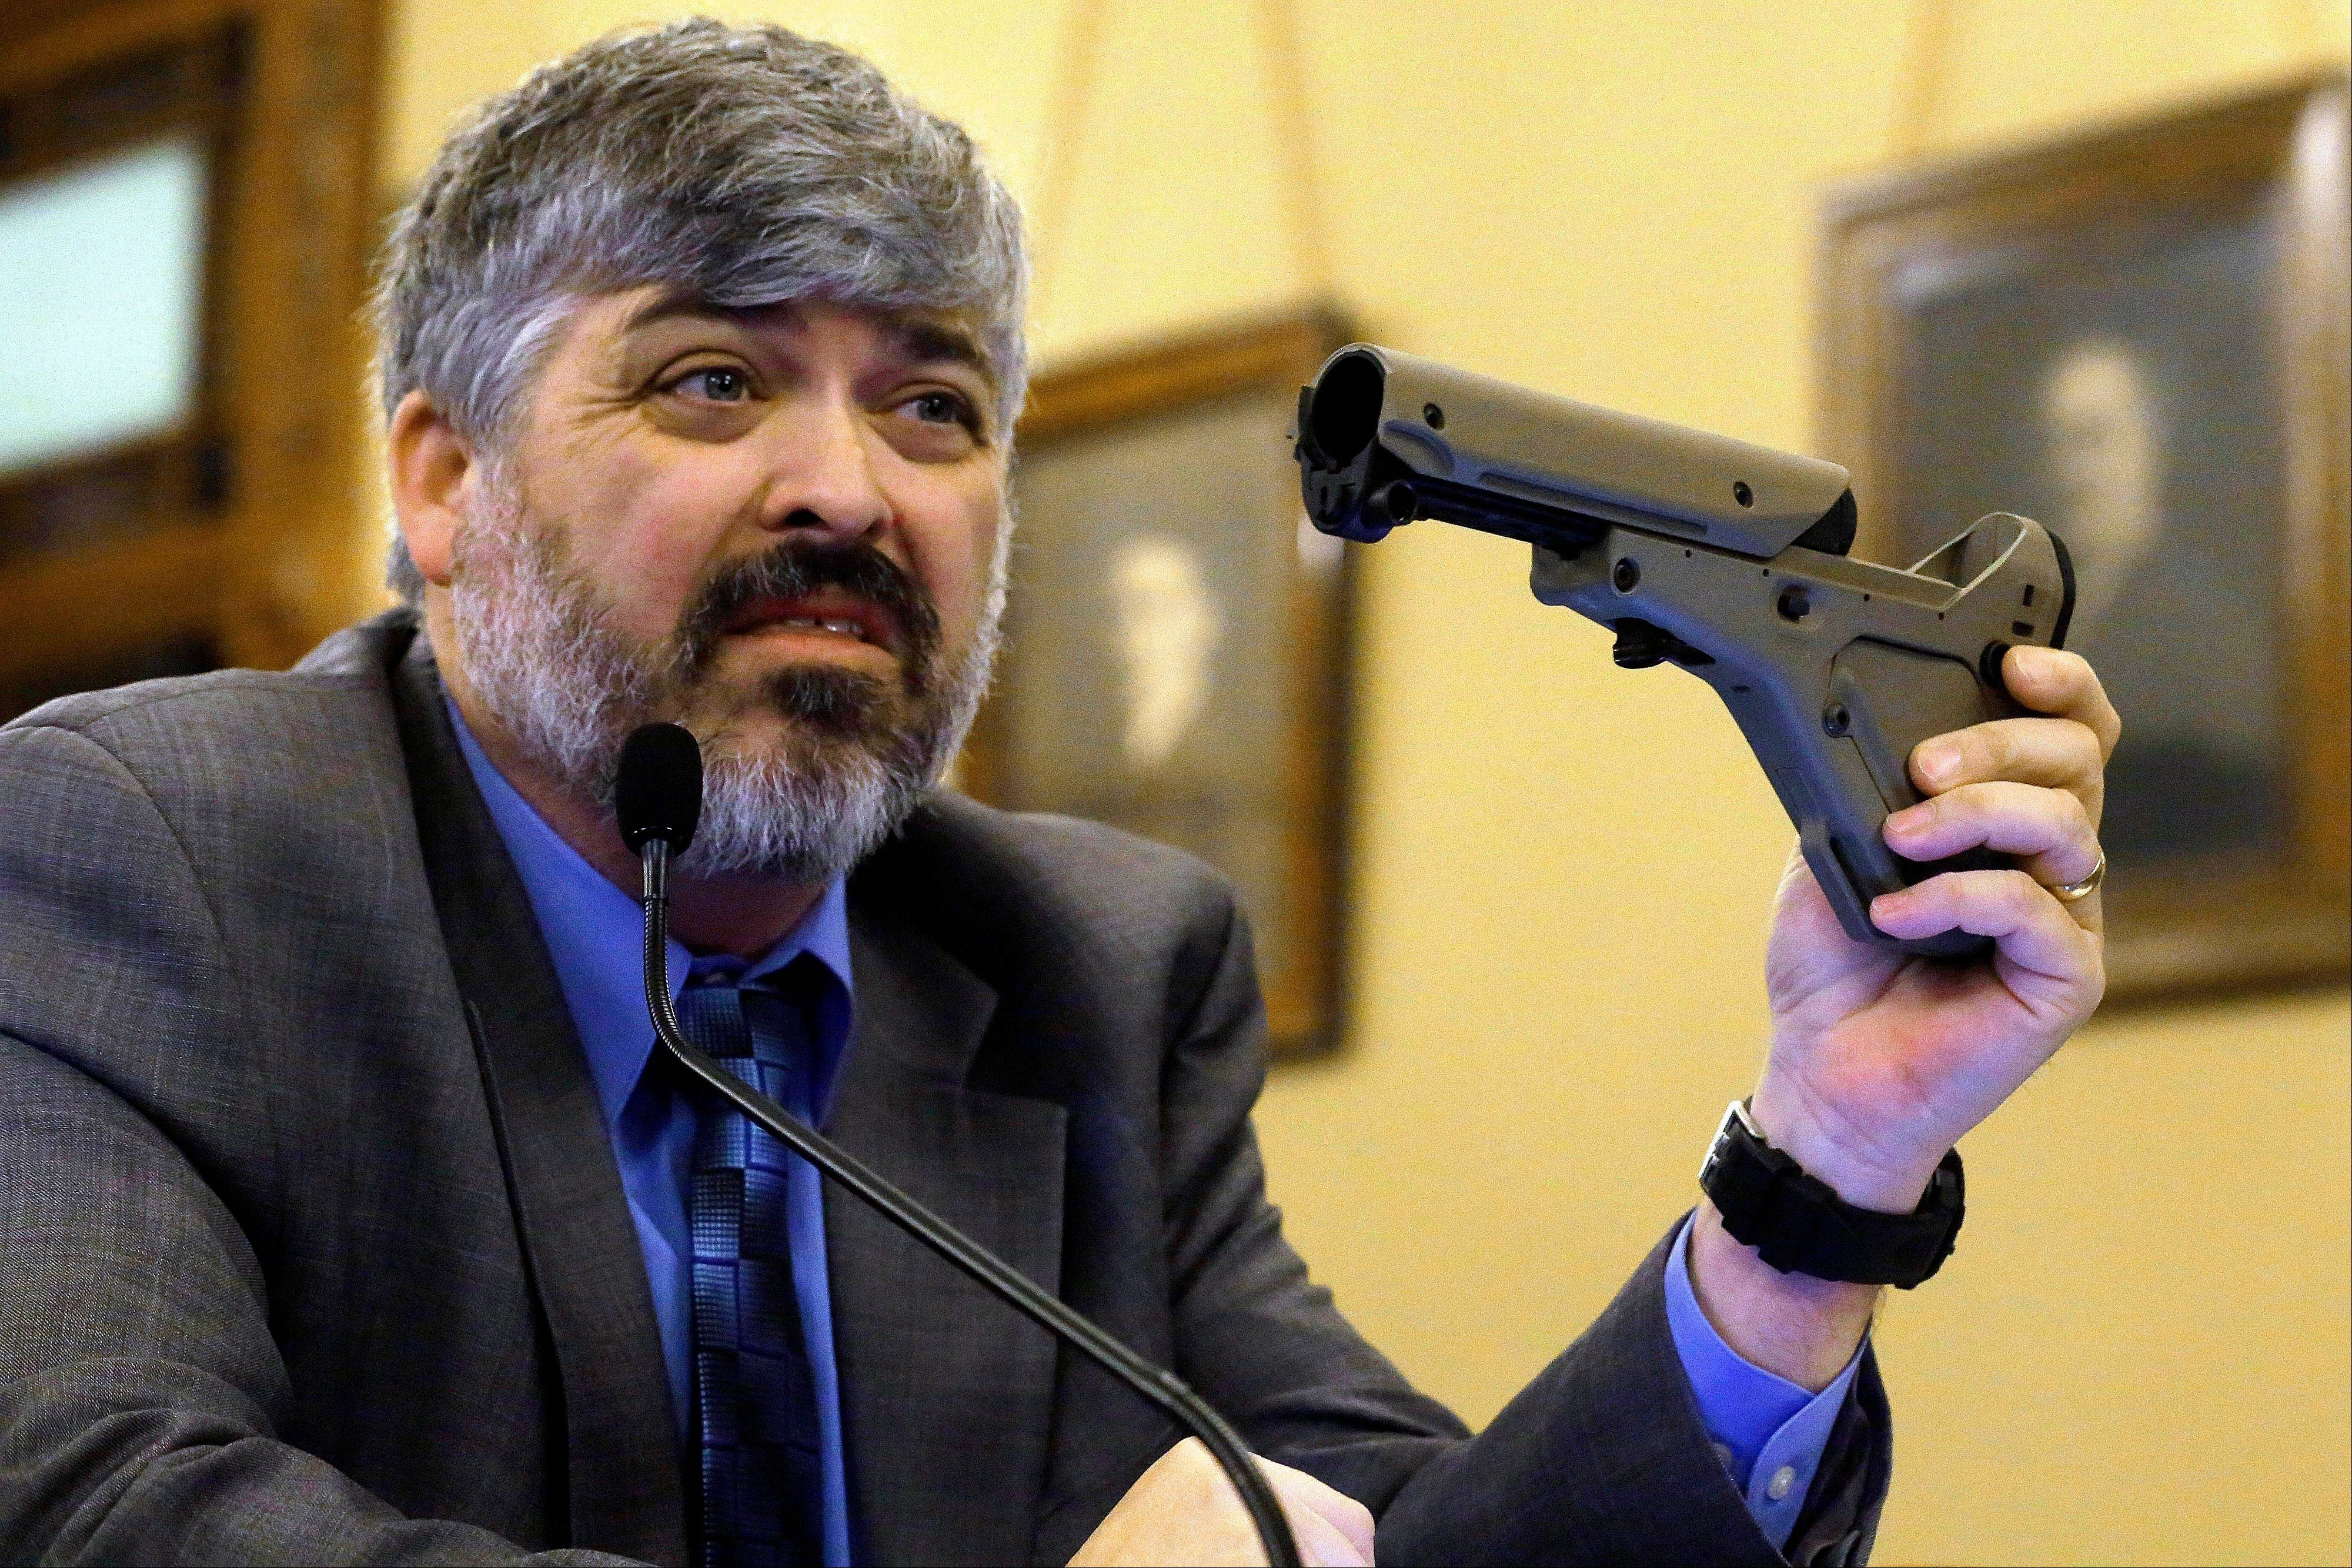 Todd Vandermyde of the NRA shows a gun stock during a committee hearing on assault weapons in February at the Capitol in Springfield. The Senate has a concealed carry bill that maybe a compromise between Chicago lawmakers fighting street violence and downstate moderates who want easier access to guns.